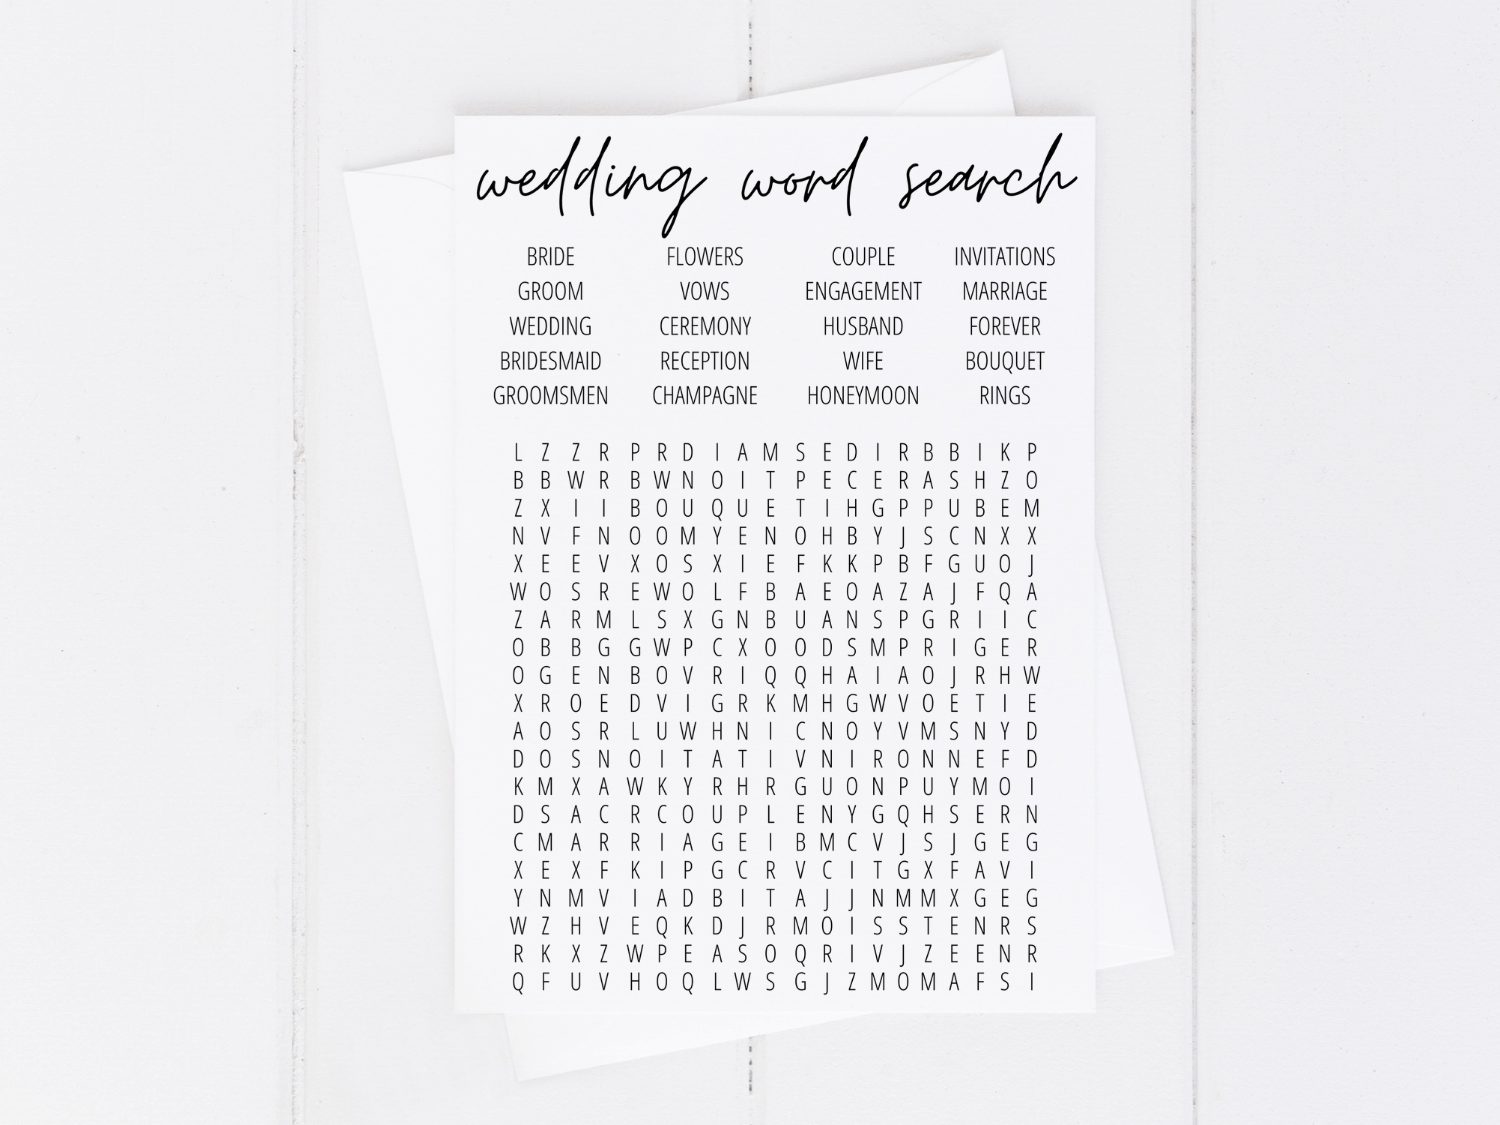 Bridal Shower Word Search